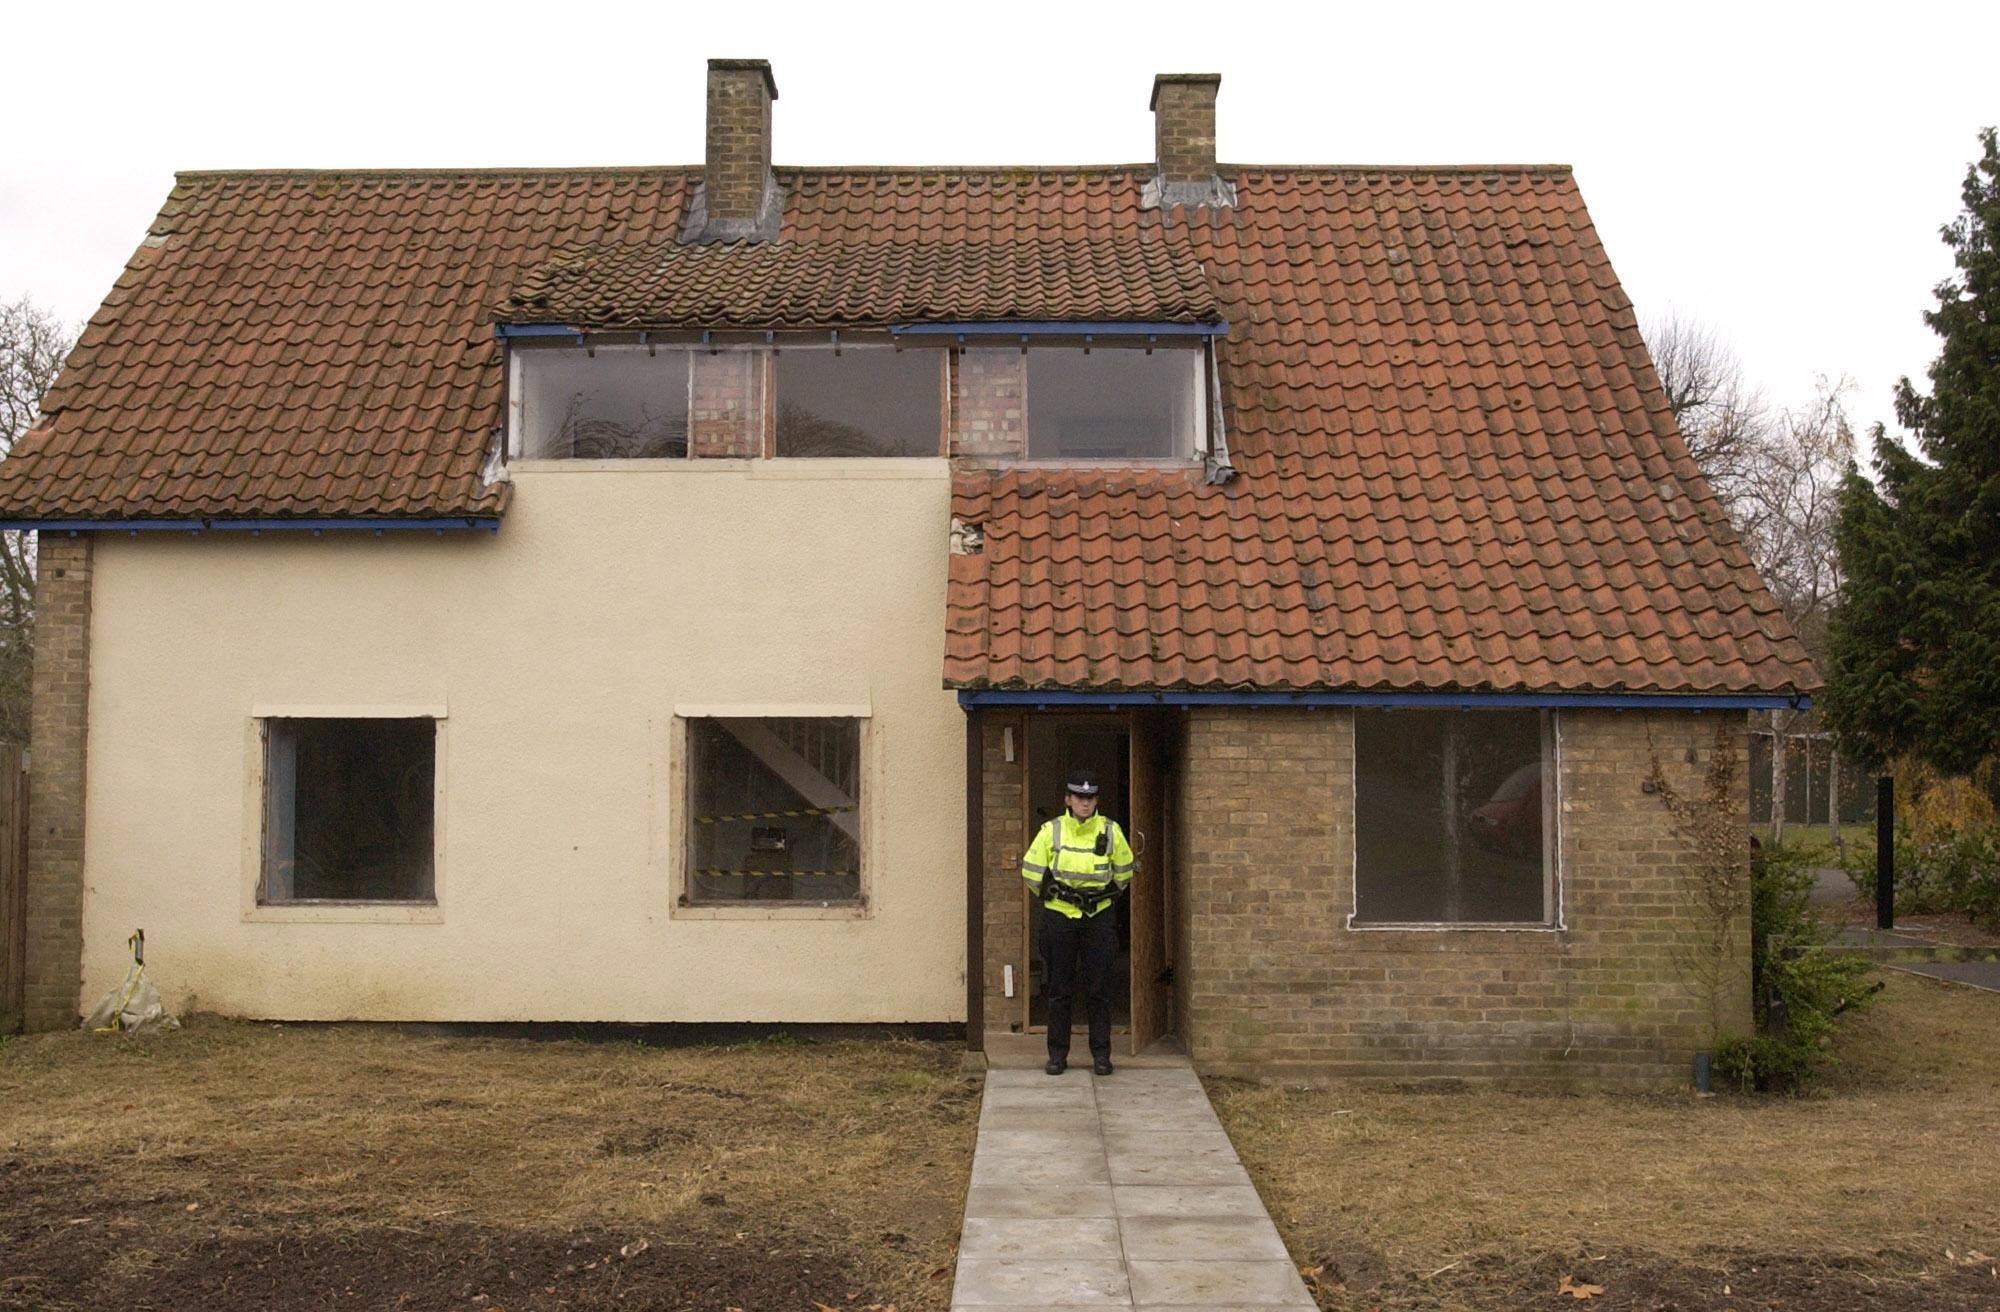 A police officer stands outside Ian Huntley's home. Credit: PA